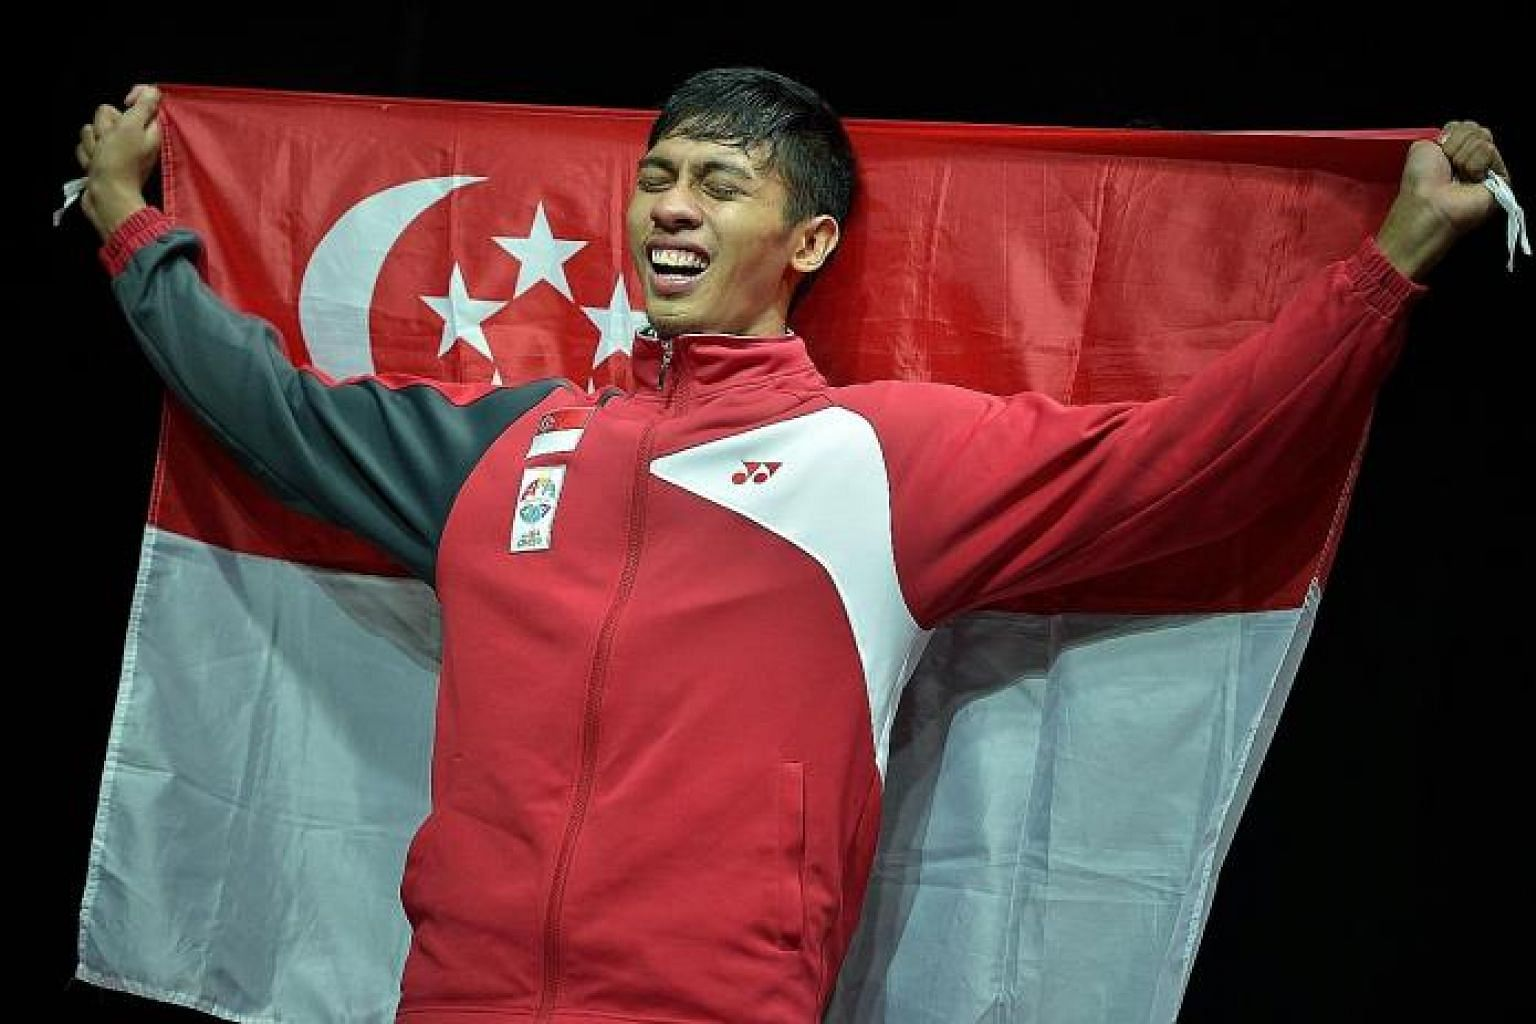 Silat fighter Muhammad Nur Alfian Juma'en crying at the medal ceremony after winning gold in the men's tanding F Class. His gold was the only win for silat - a win that mattered greatly to the sport, the fans and him.